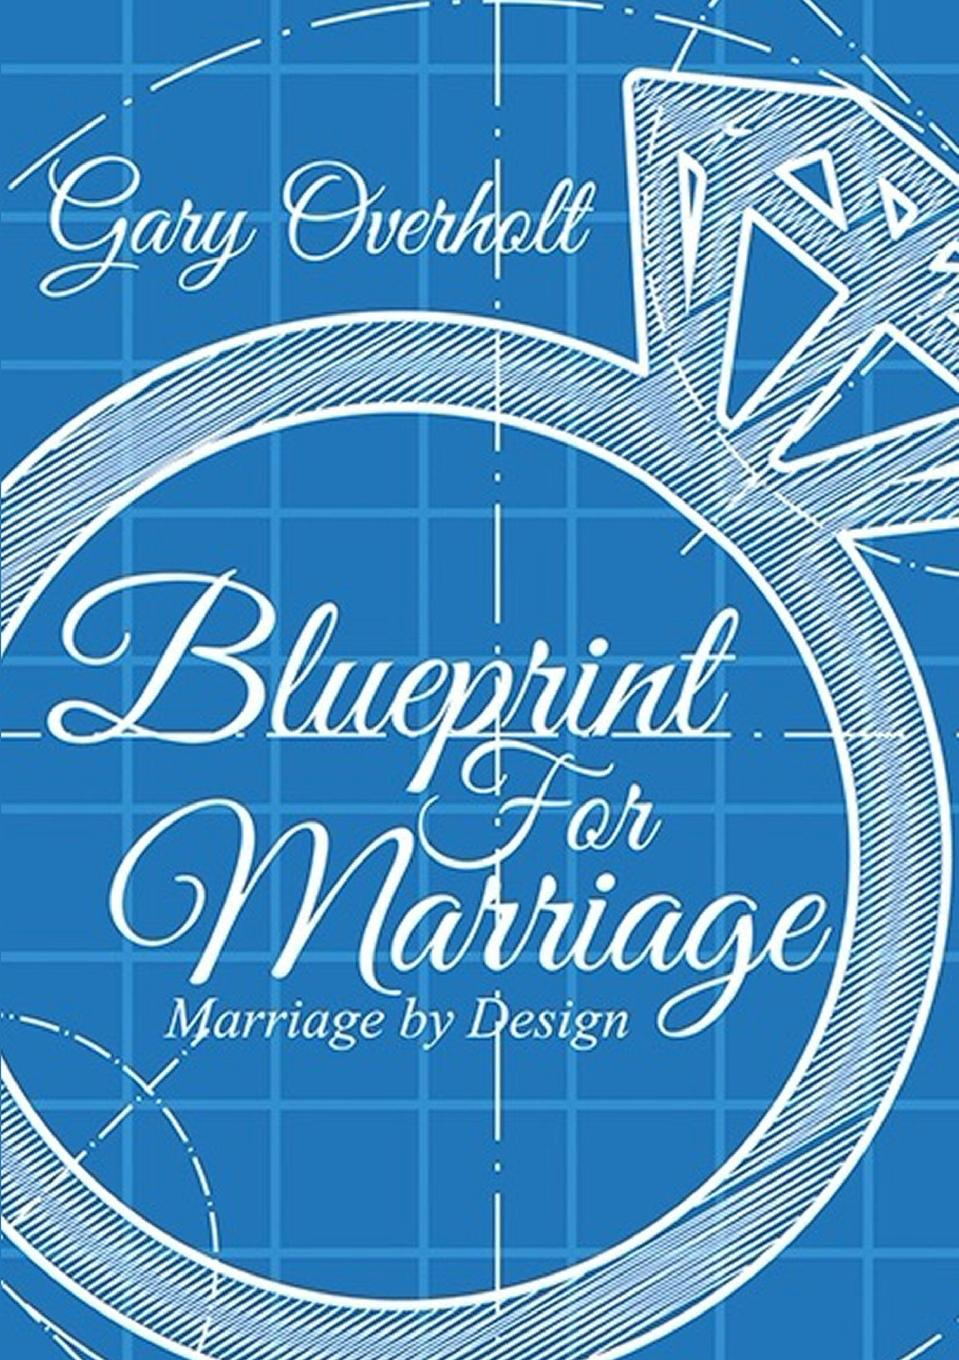 Gary Overholt Blueprint For Marriage. Marriage by Design secrets of a very good marriage